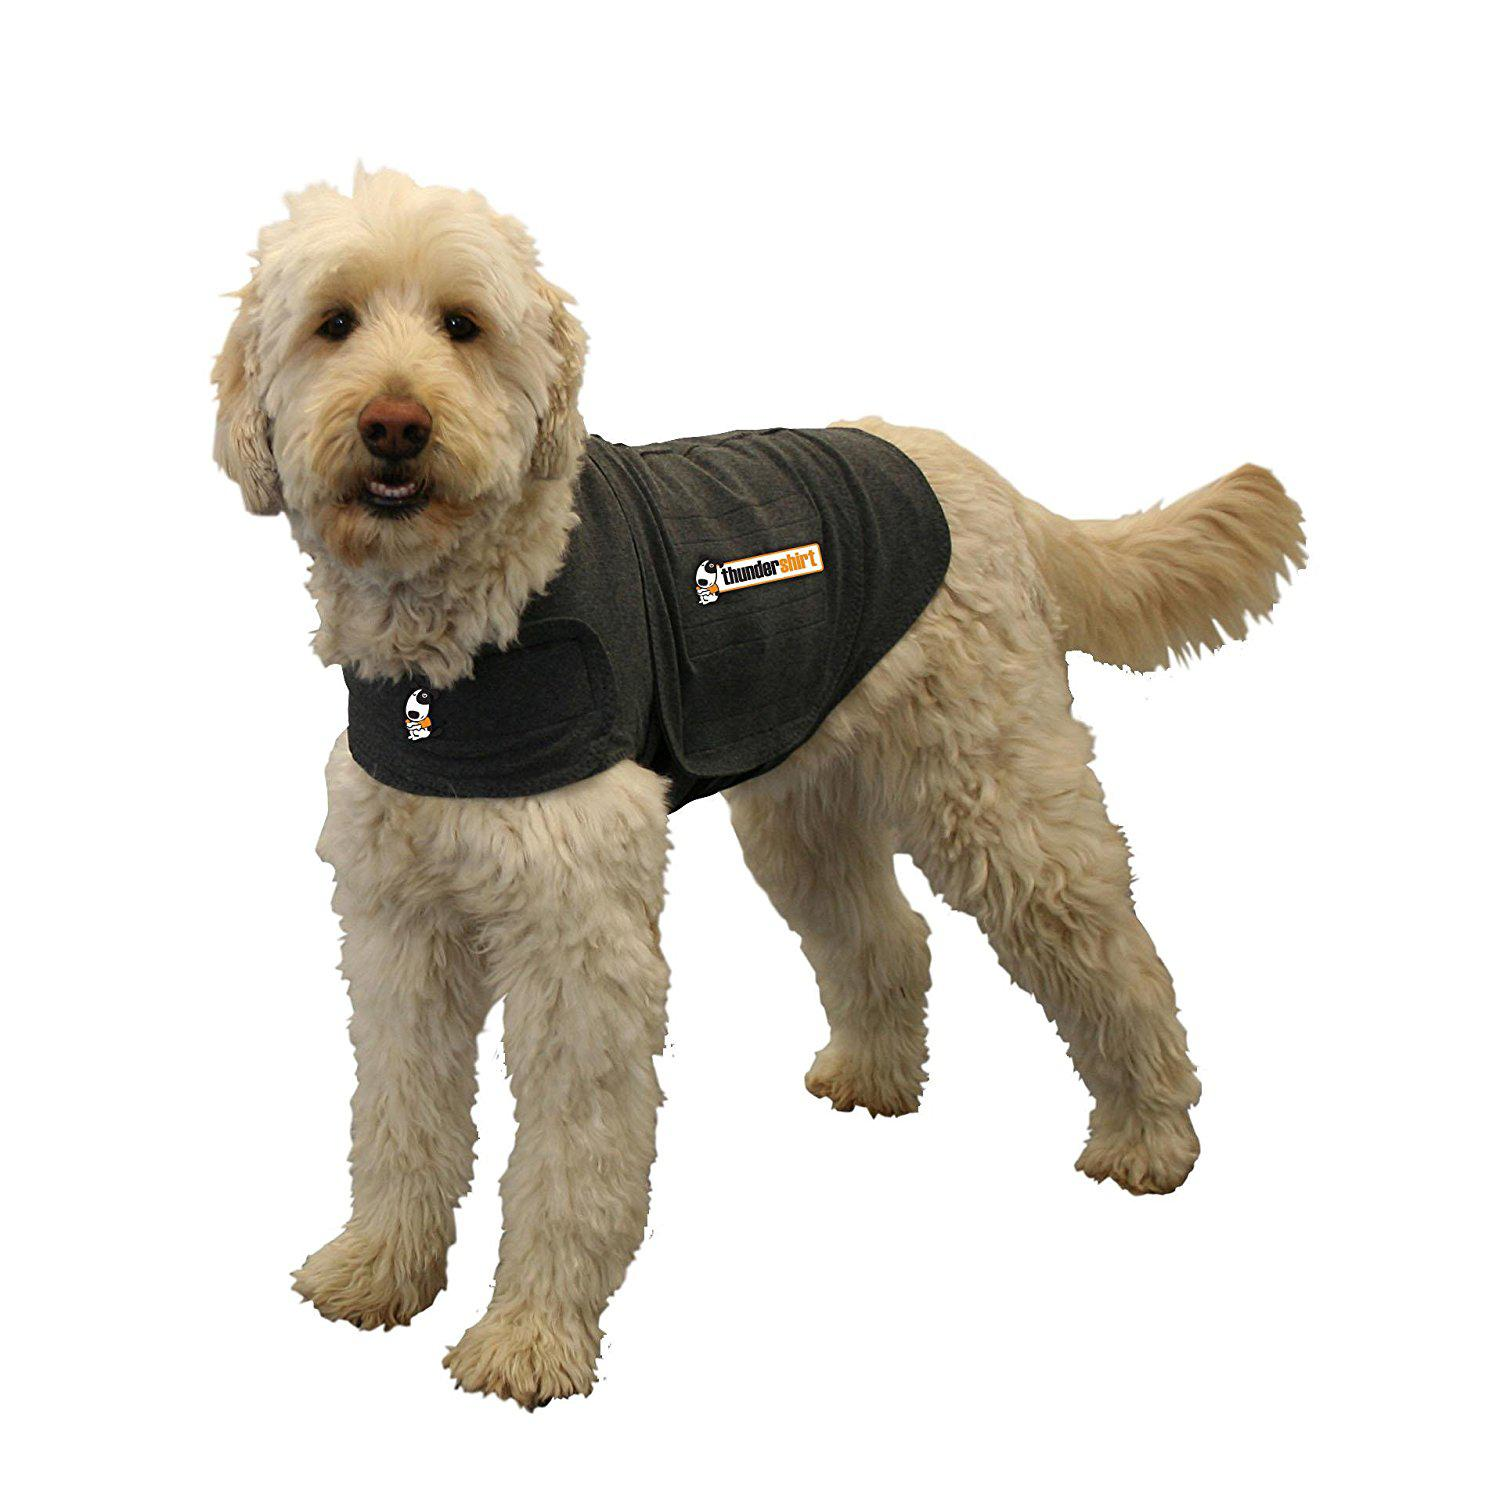 Anxious dog? Check out the Thundershirt!